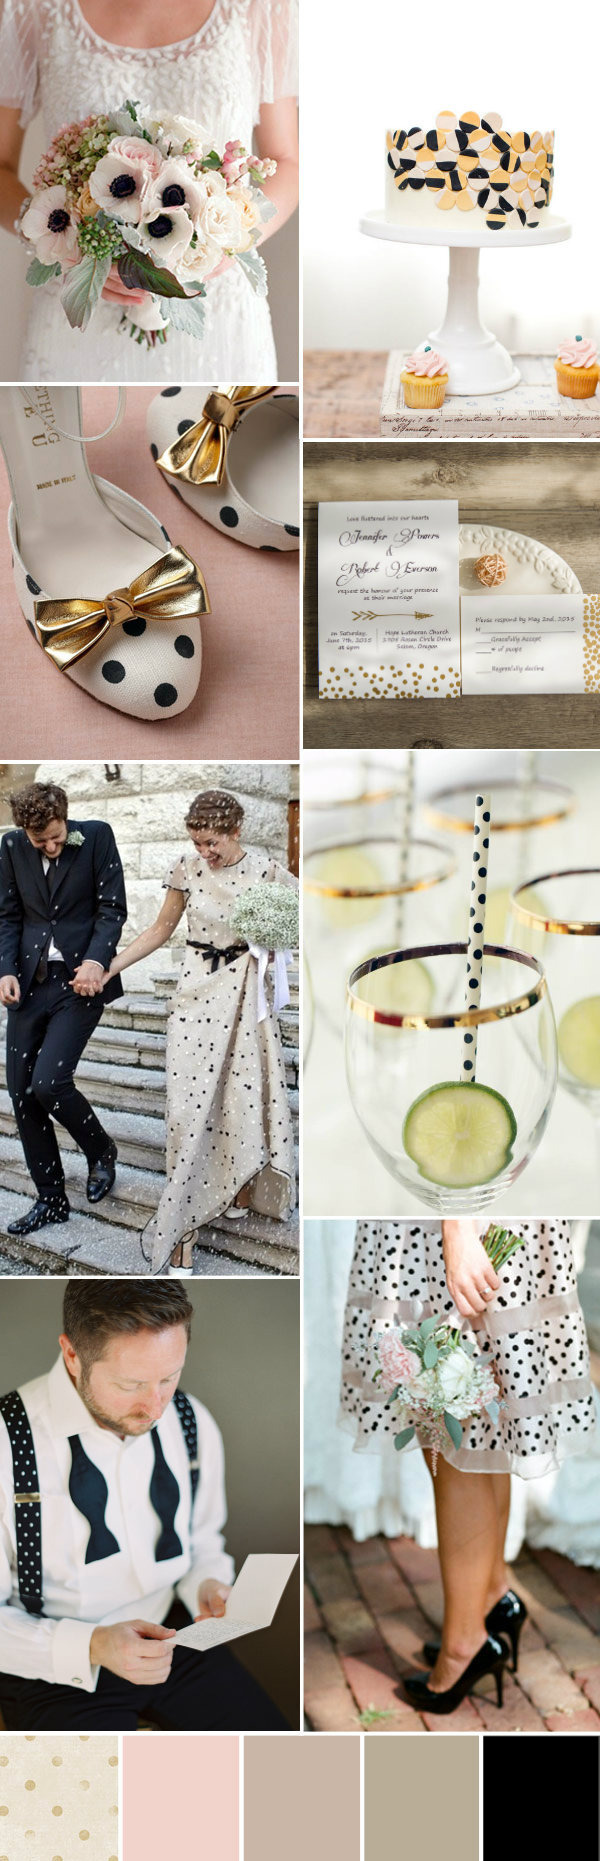 blush gold grey wedding color palette with polka dots